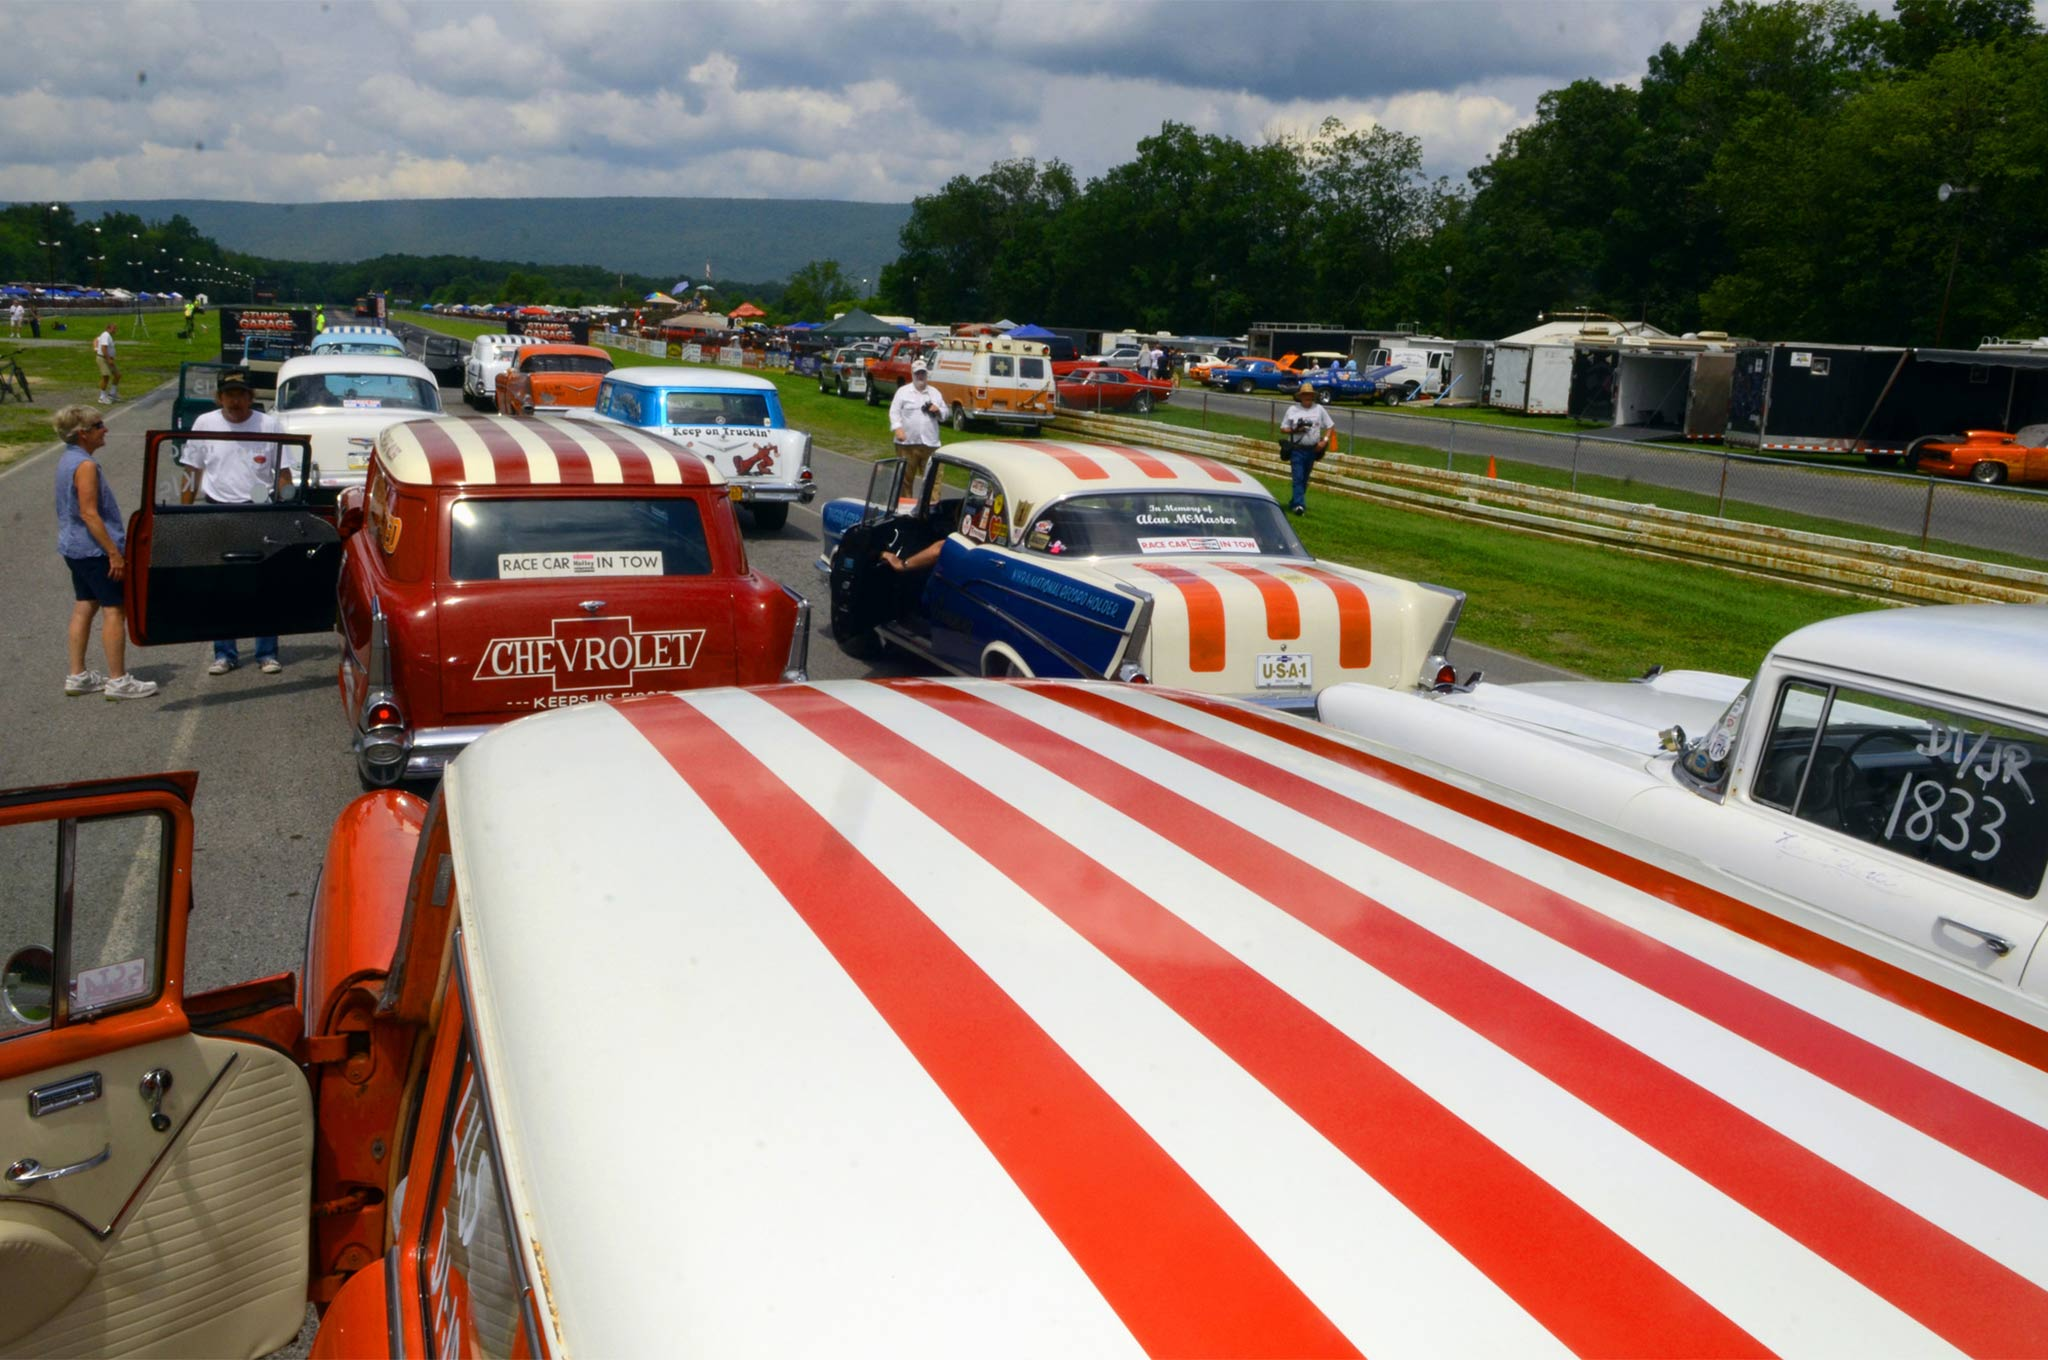 Stripes were in when it came to Division 1 Junior Stocks, and the nation followed suit. The staging lanes on Sunday morning bore witness to a sight that had been missing since the early 1970s.